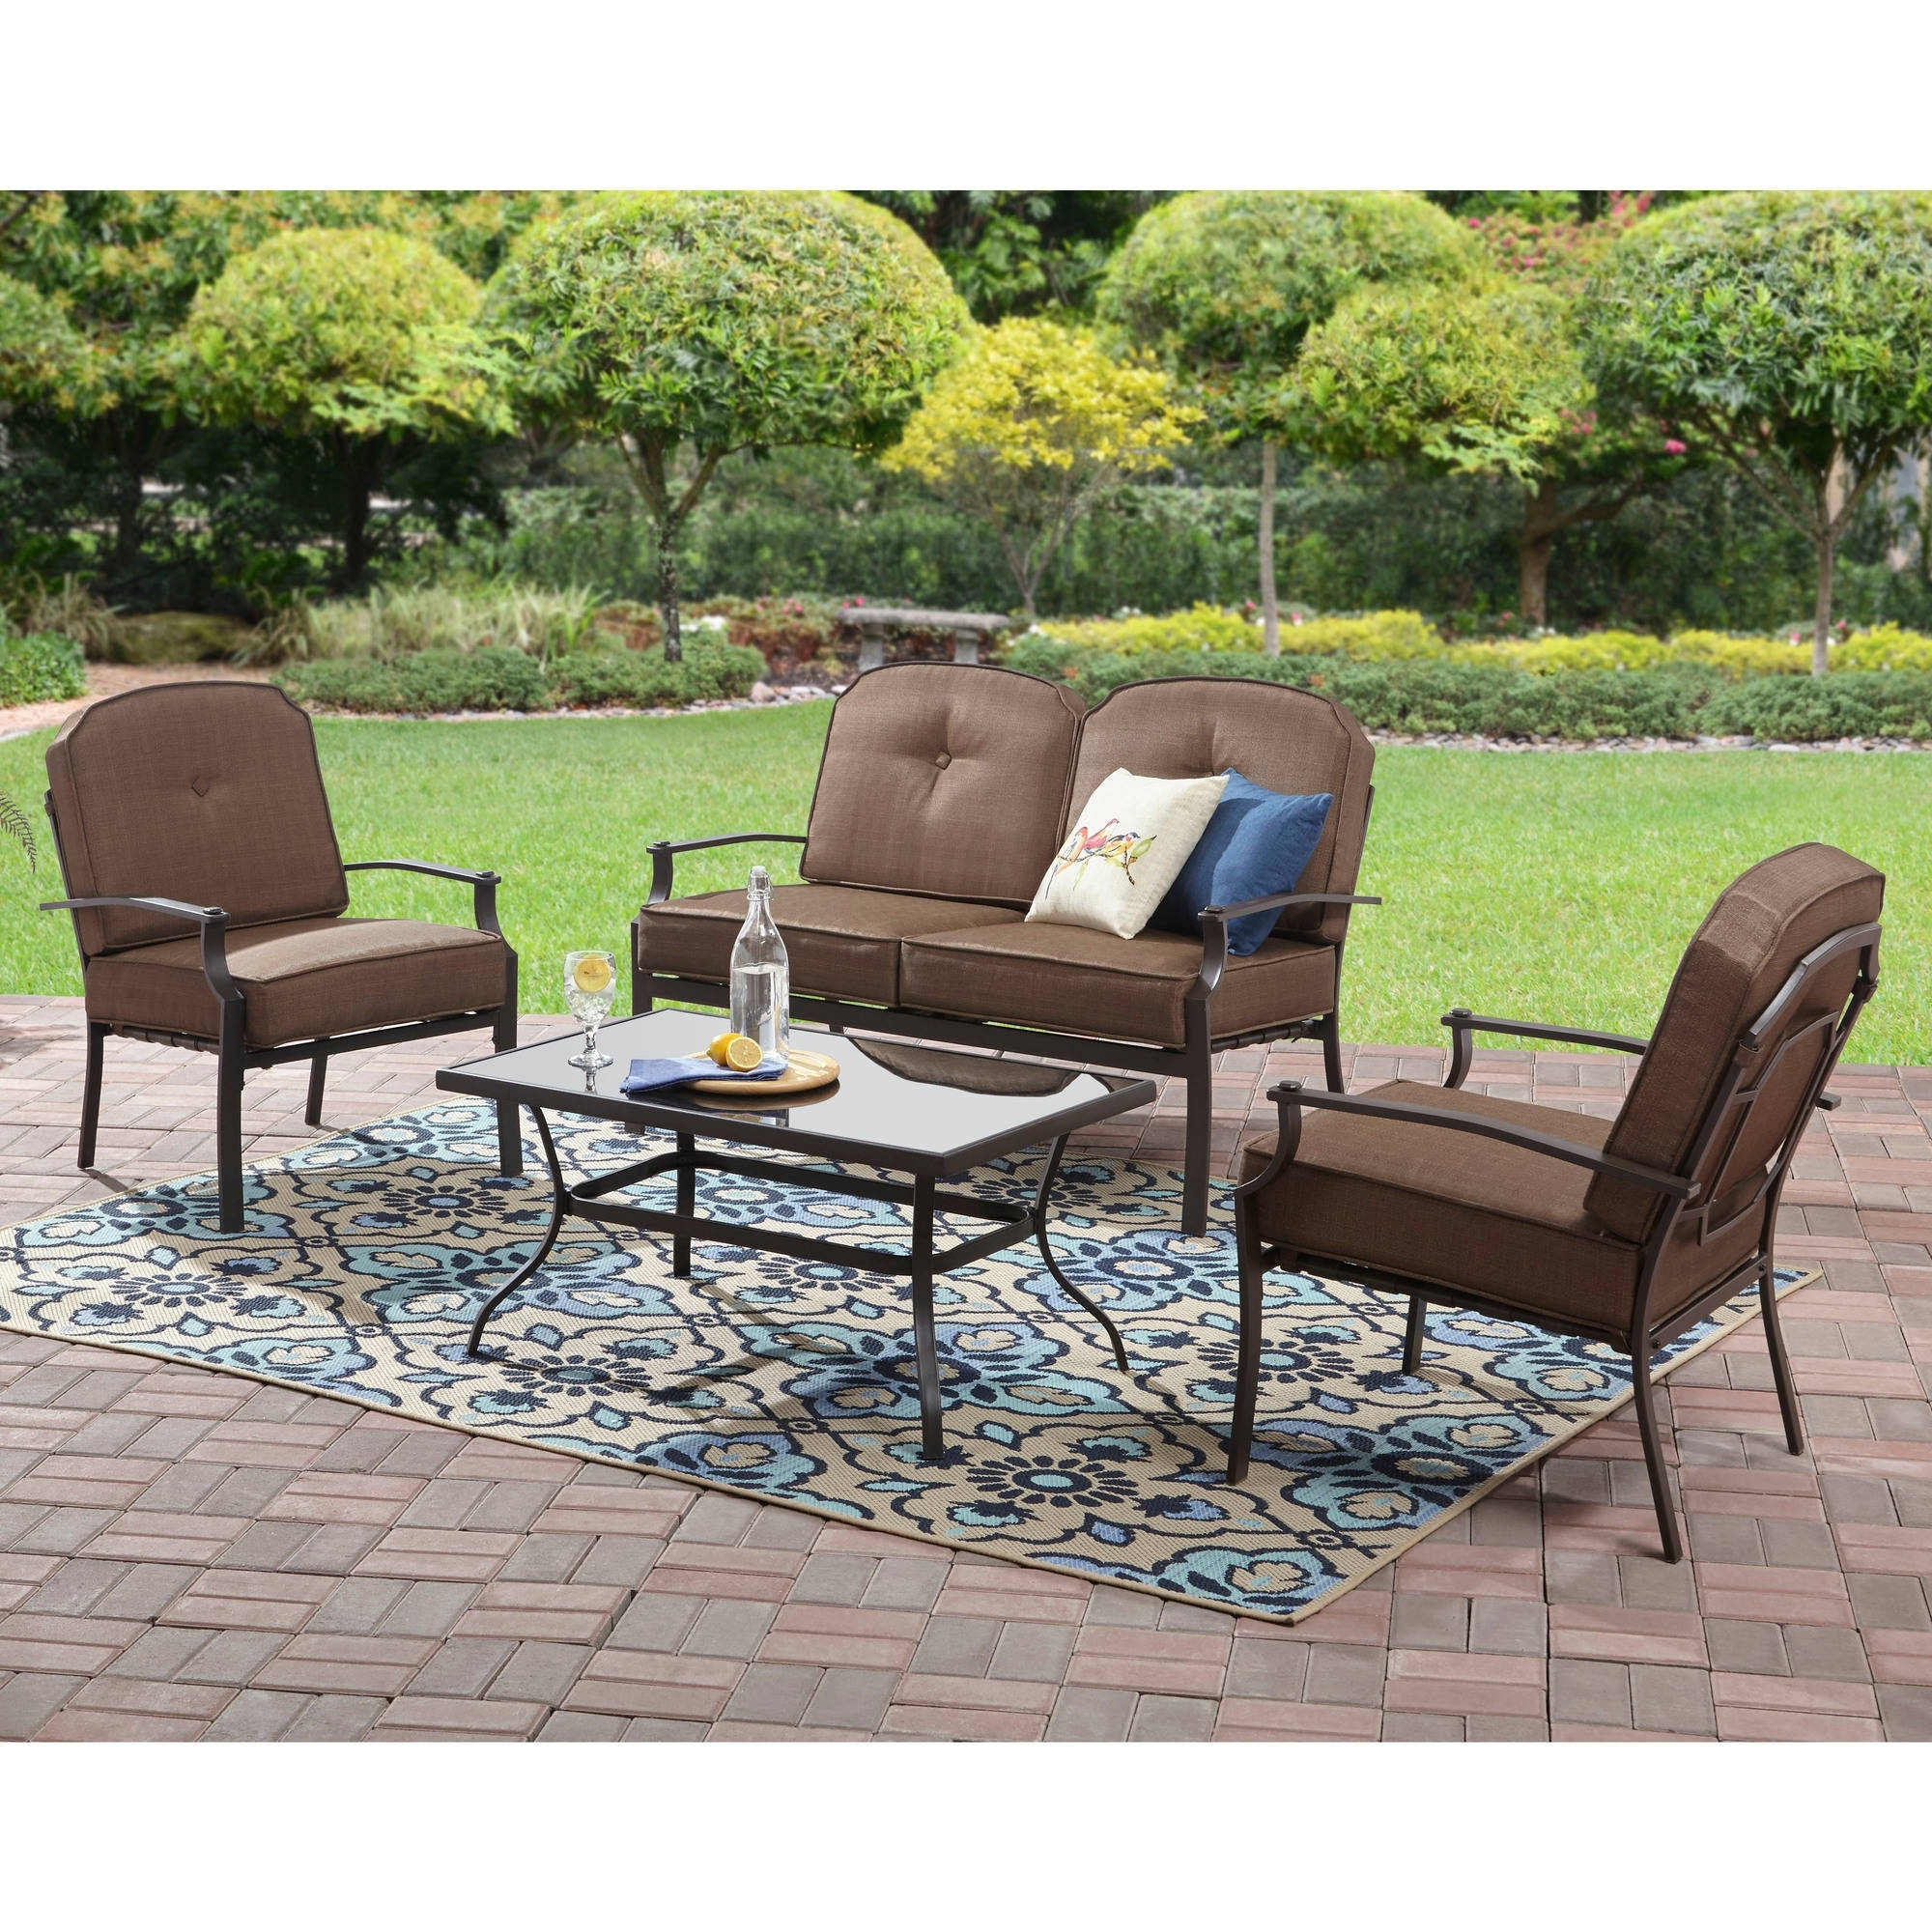 Recent Steel Patio Conversation Sets Regarding Mainstays Spring Creek 5 Piece Patio Dining Set, Seats 4 – Walmart (View 4 of 20)